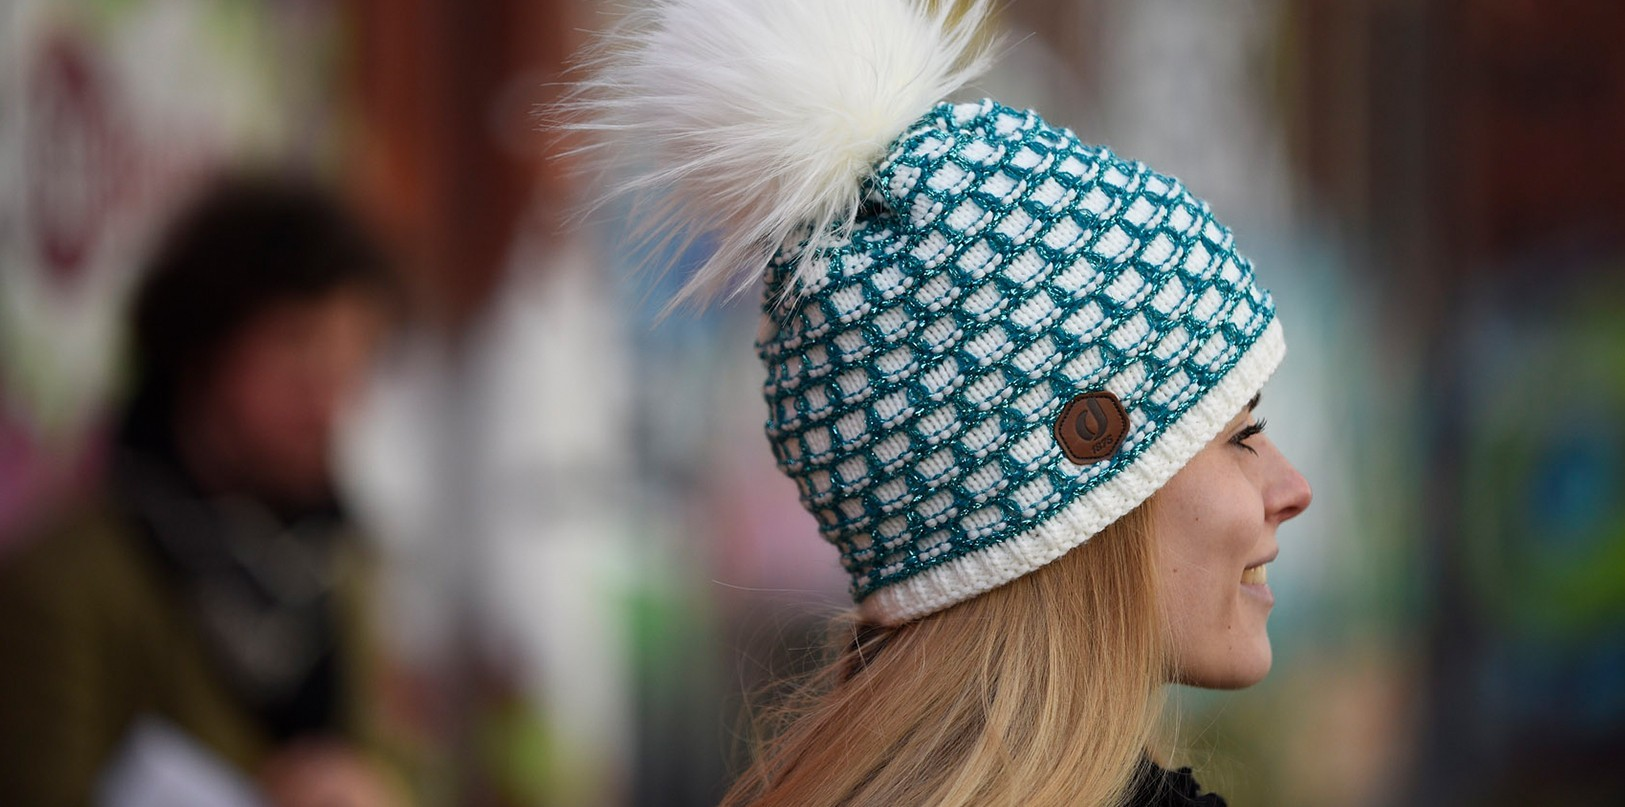 Discover our new models of hats